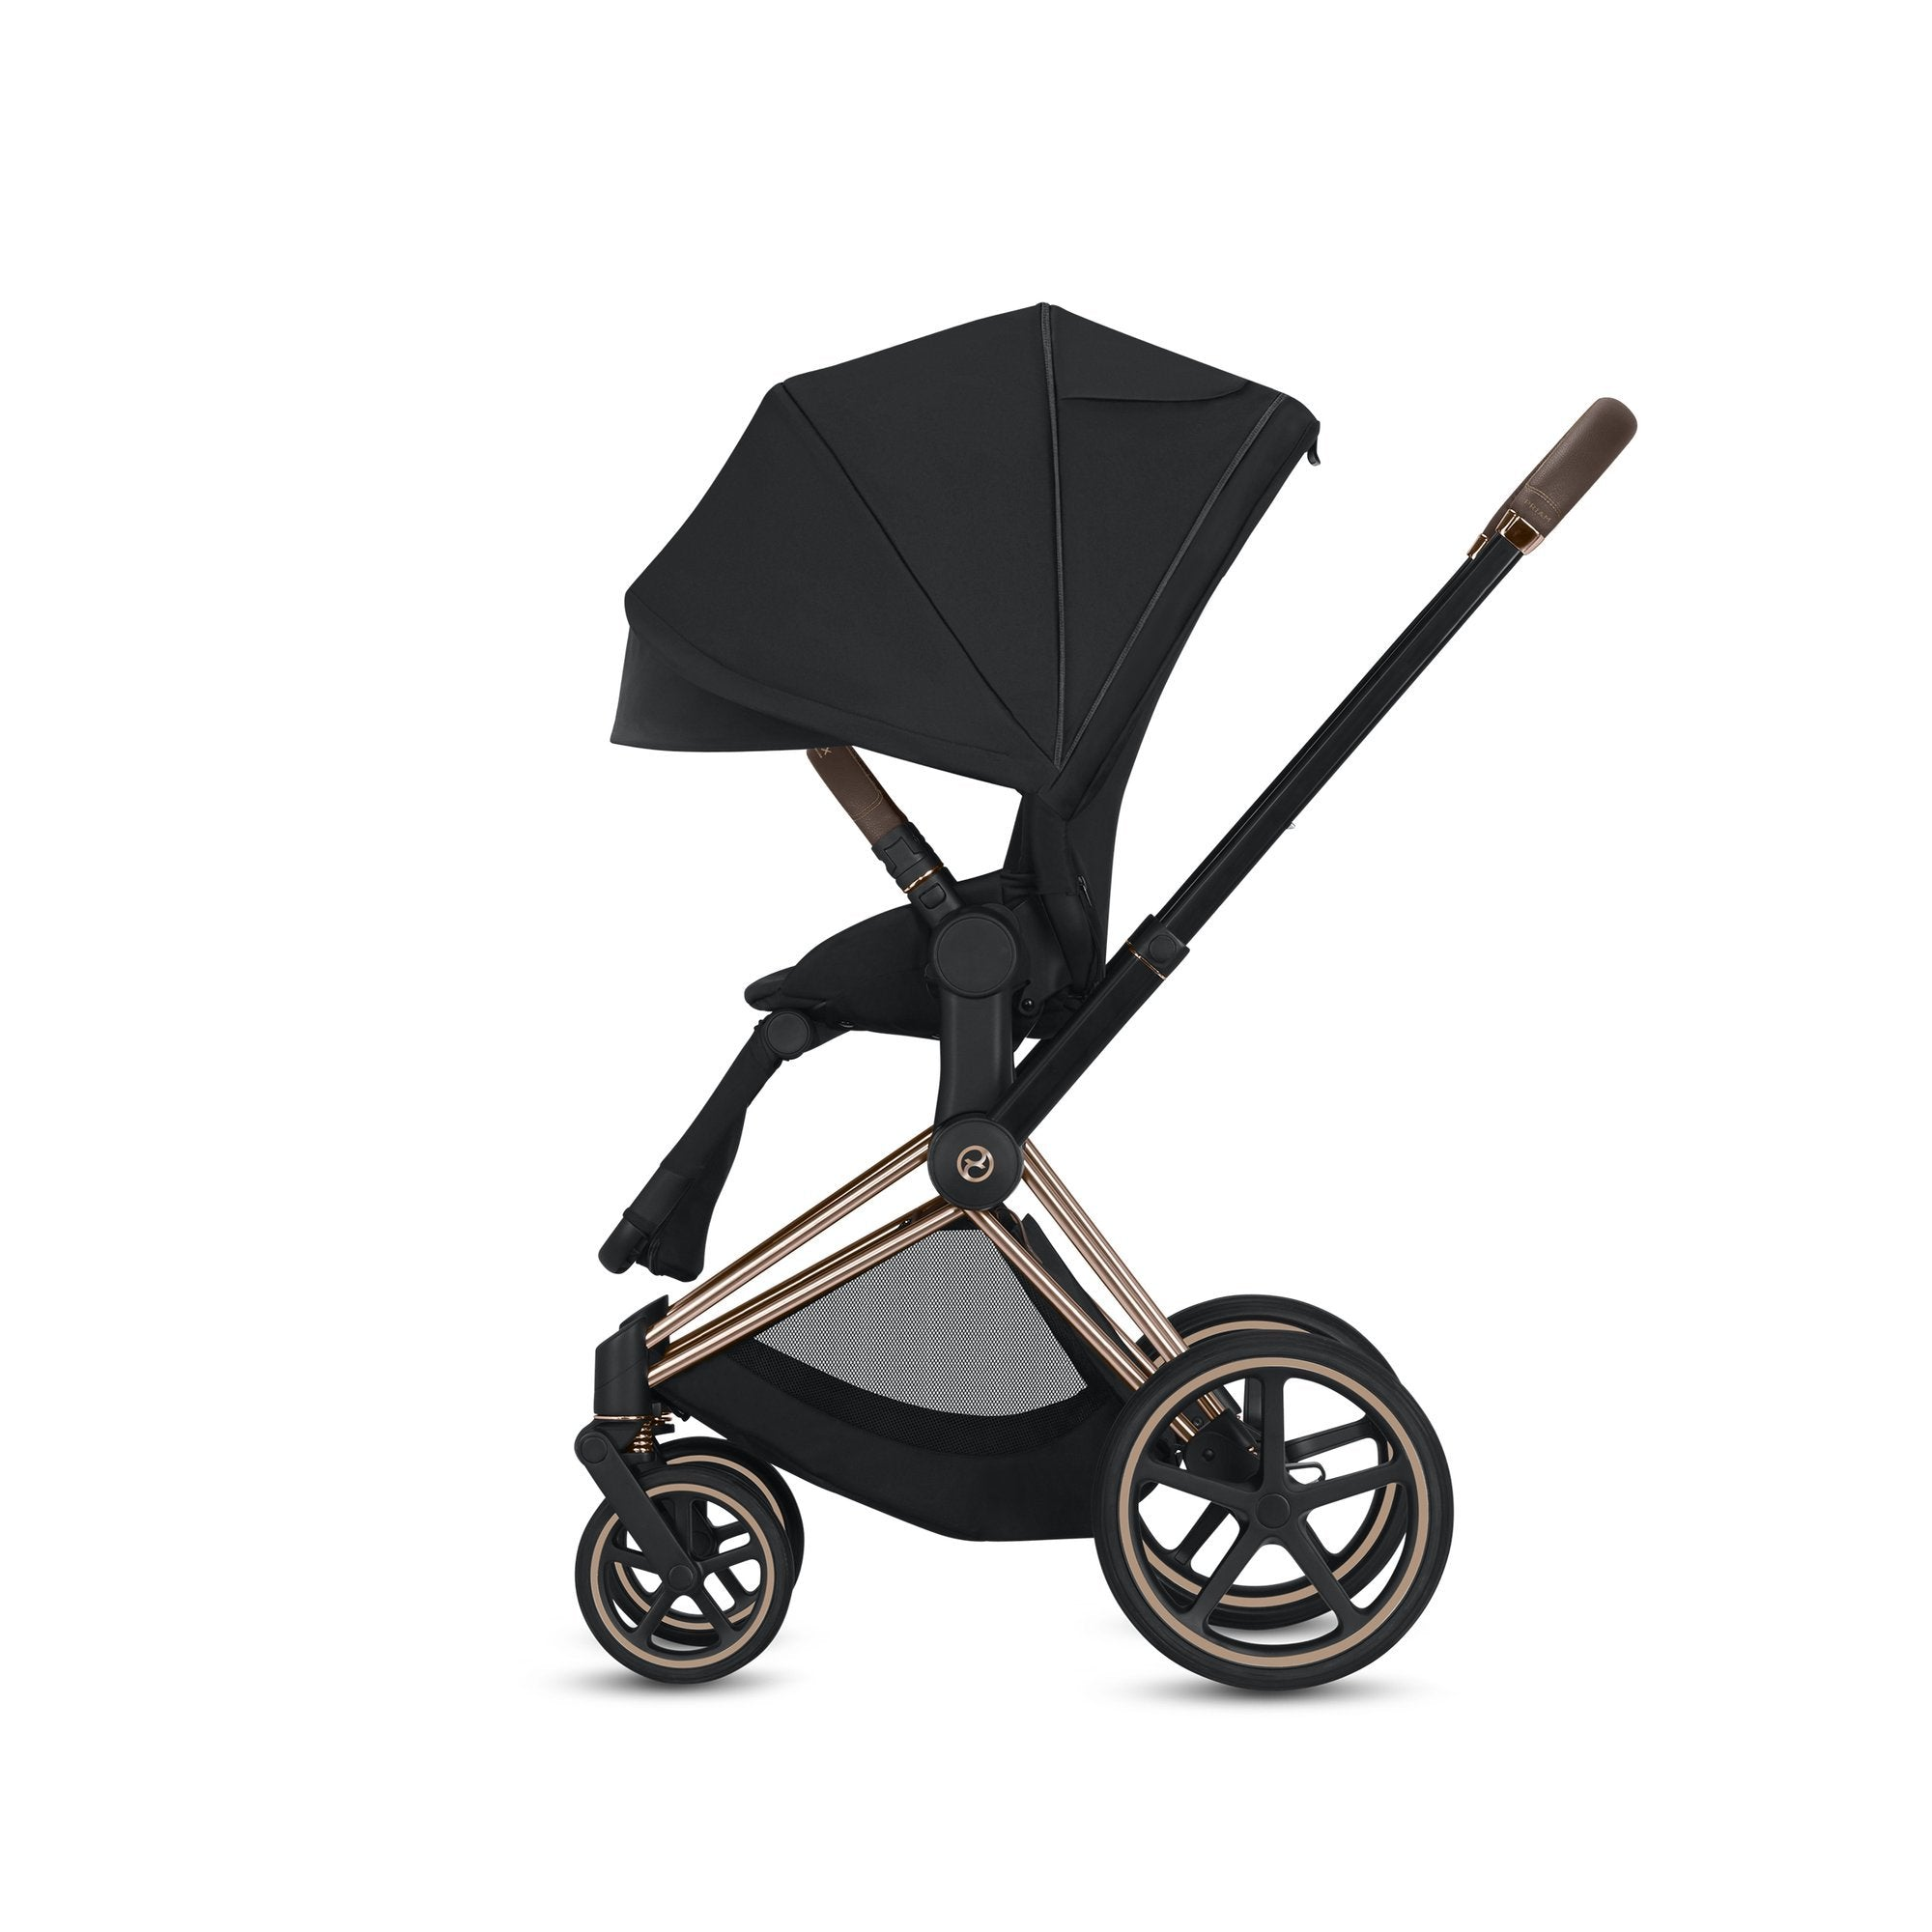 Cybex Priam Complete Stroller Plus Bassinet, Black - Rose Gold